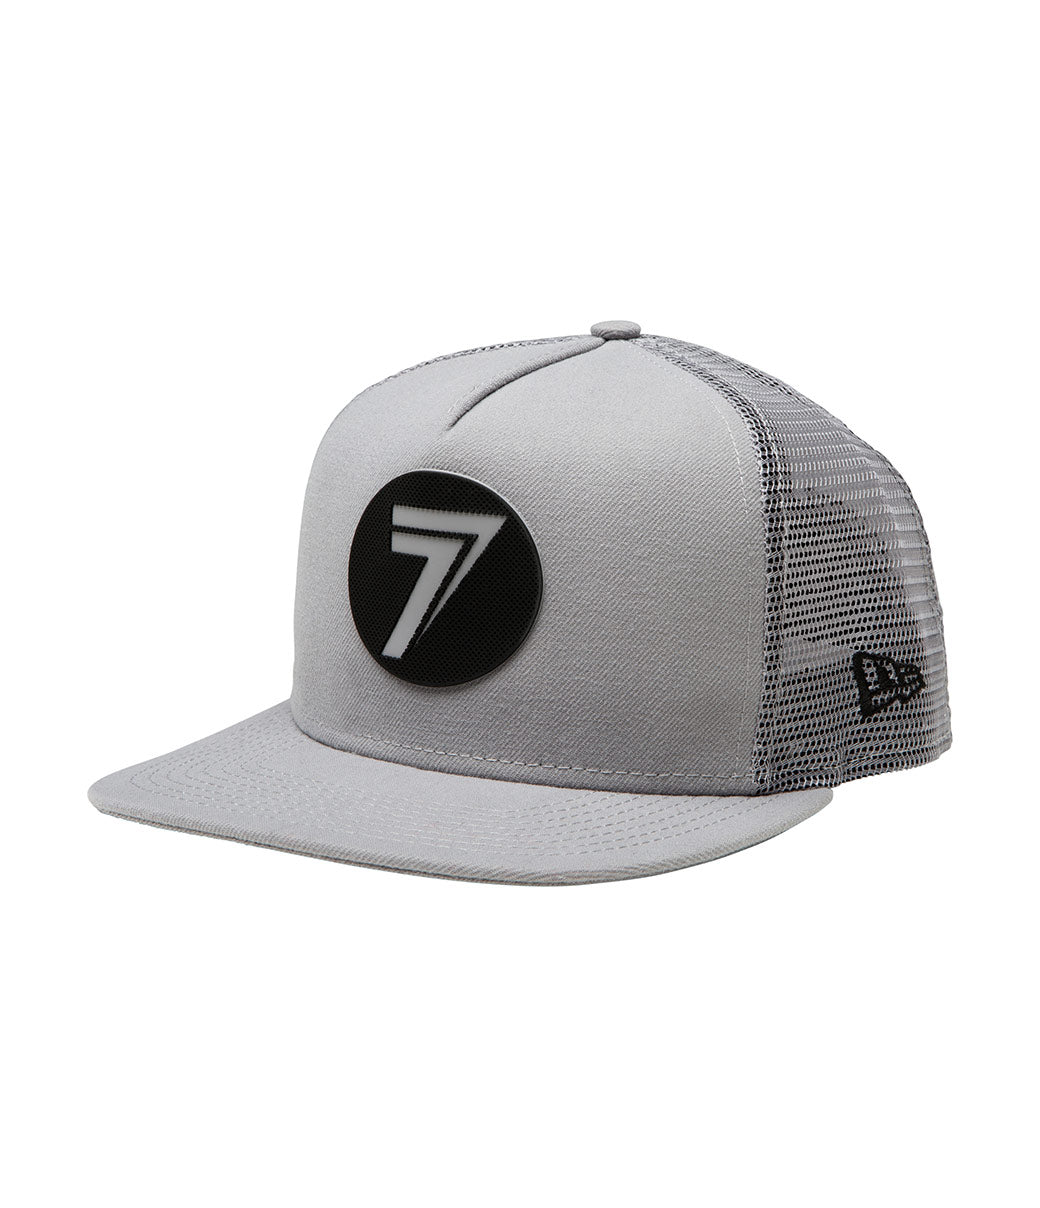 Dot Hat - Gray/Black